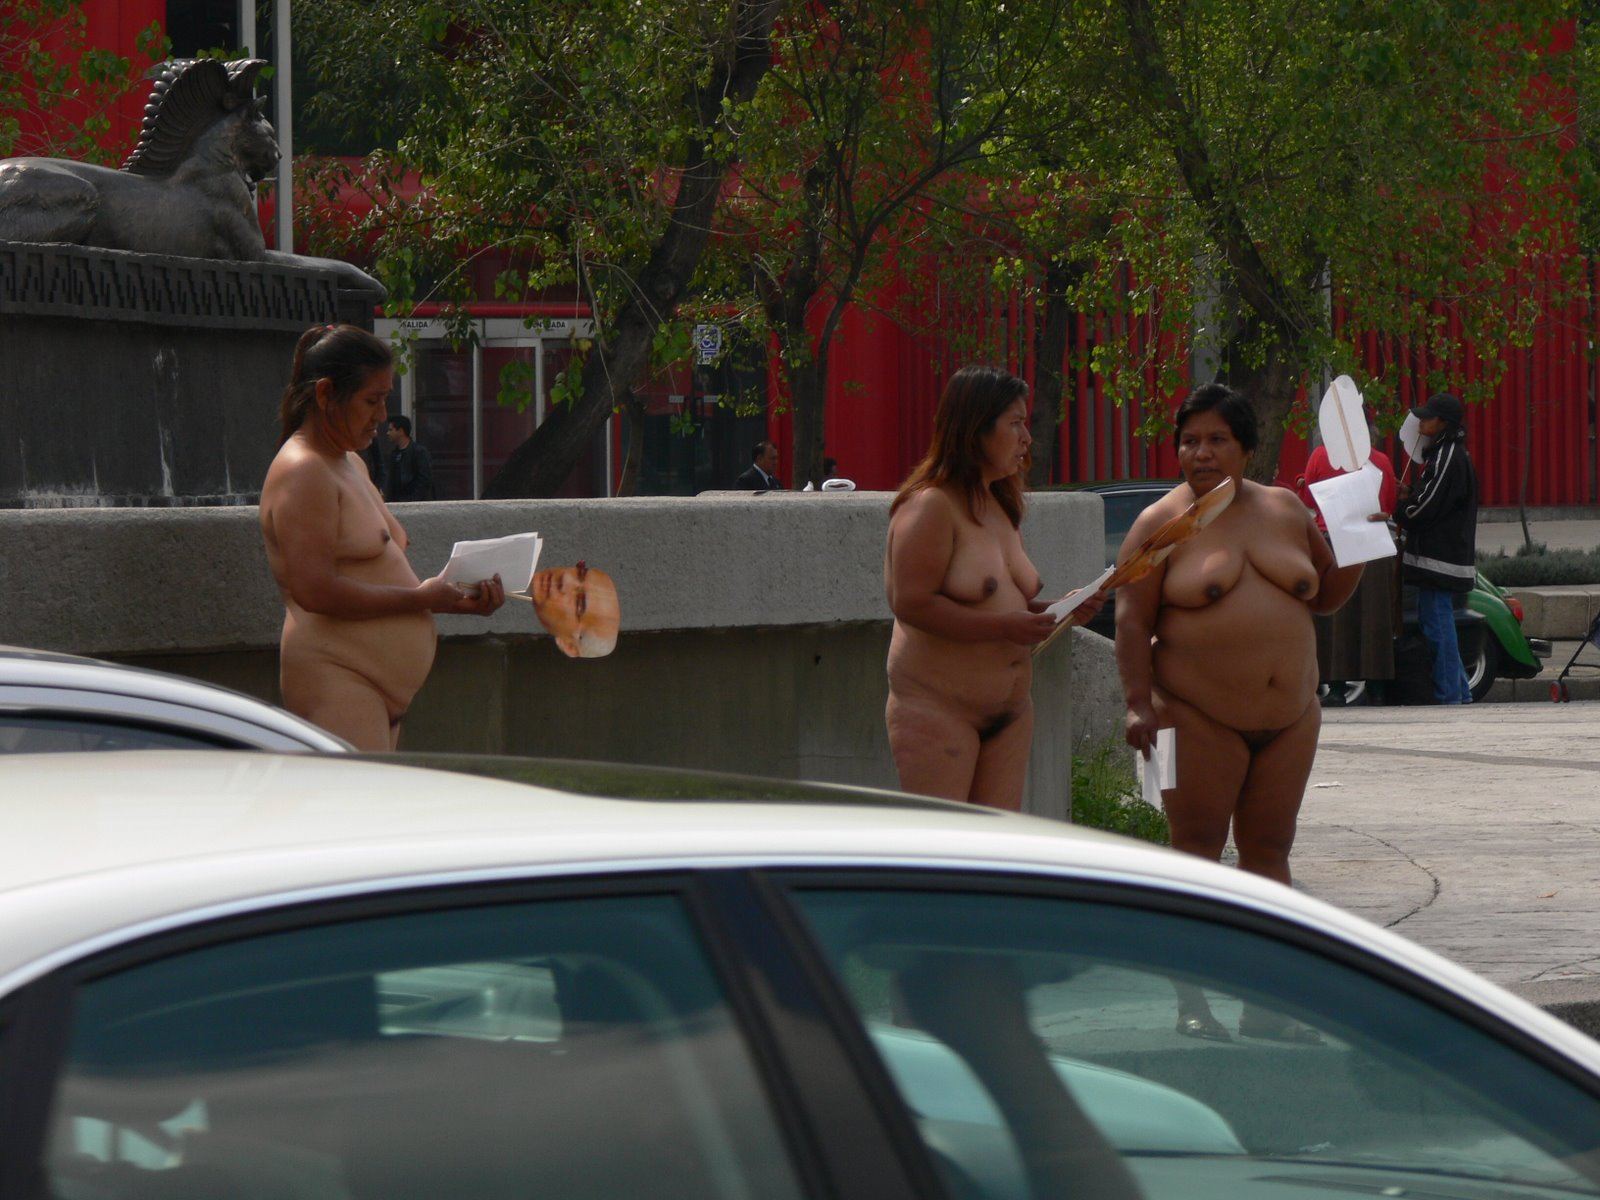 Public in Mexican nude